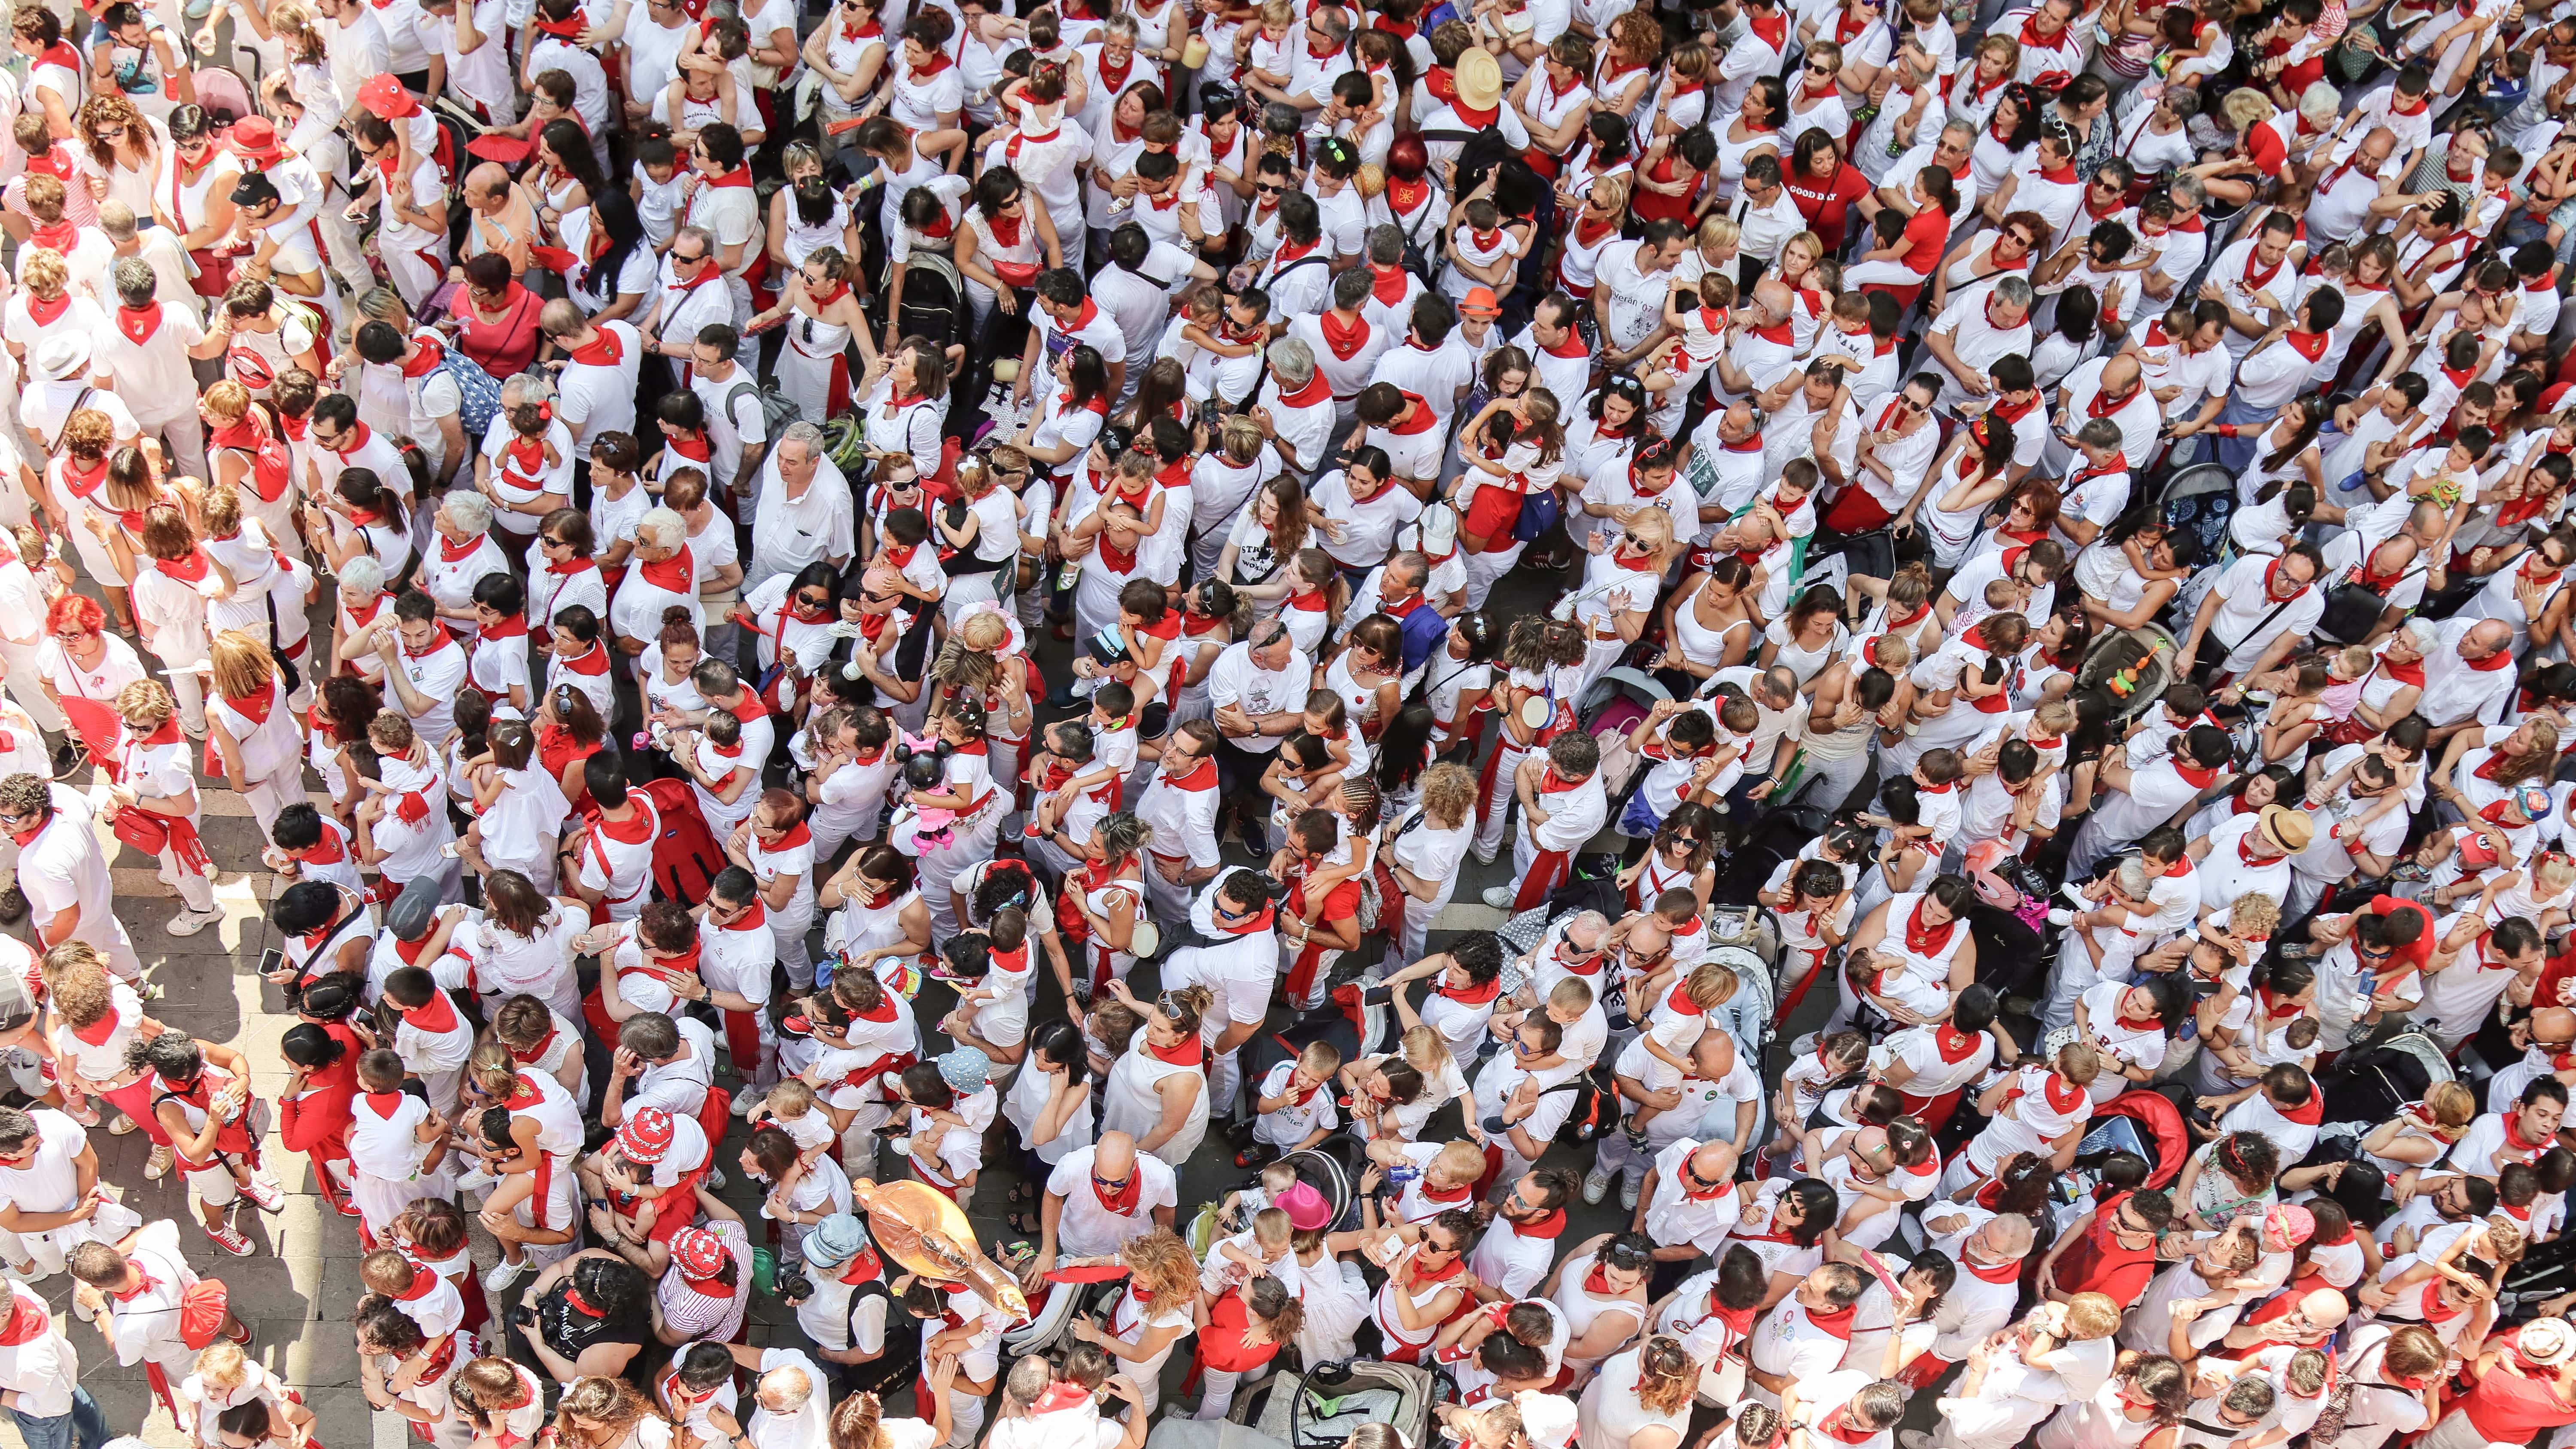 tips for visitors to spain should be to attend a local festival